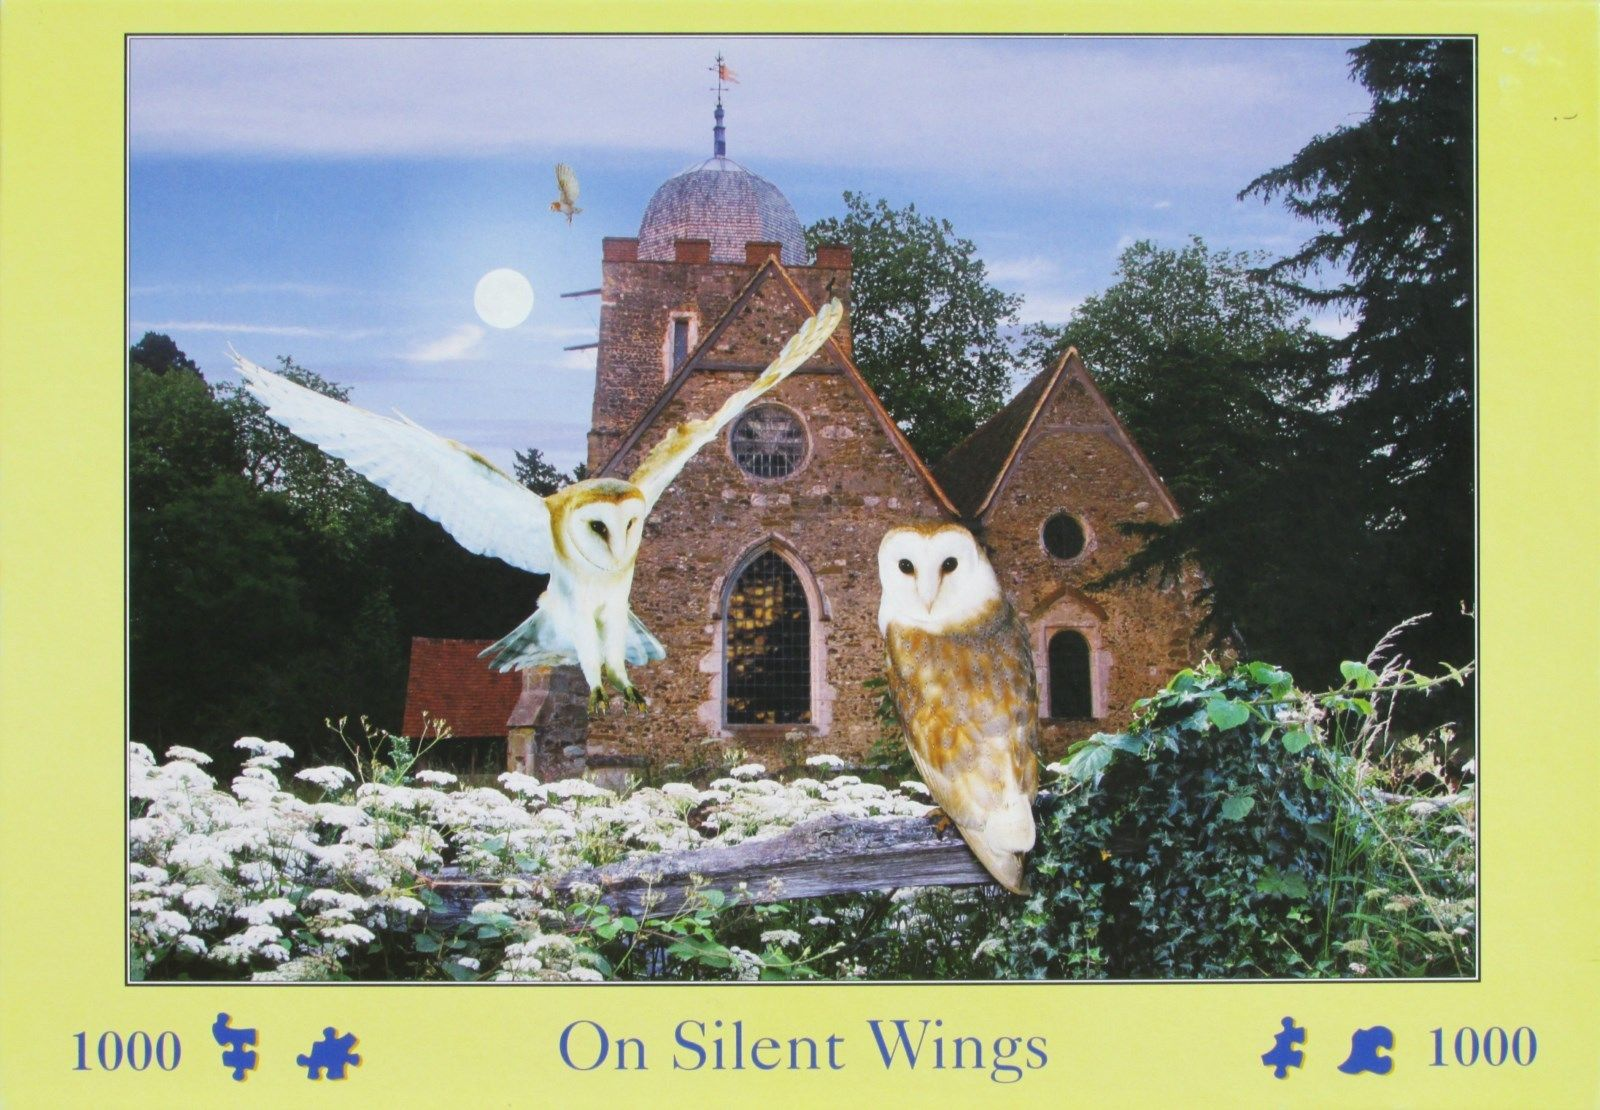 On Silent Wings